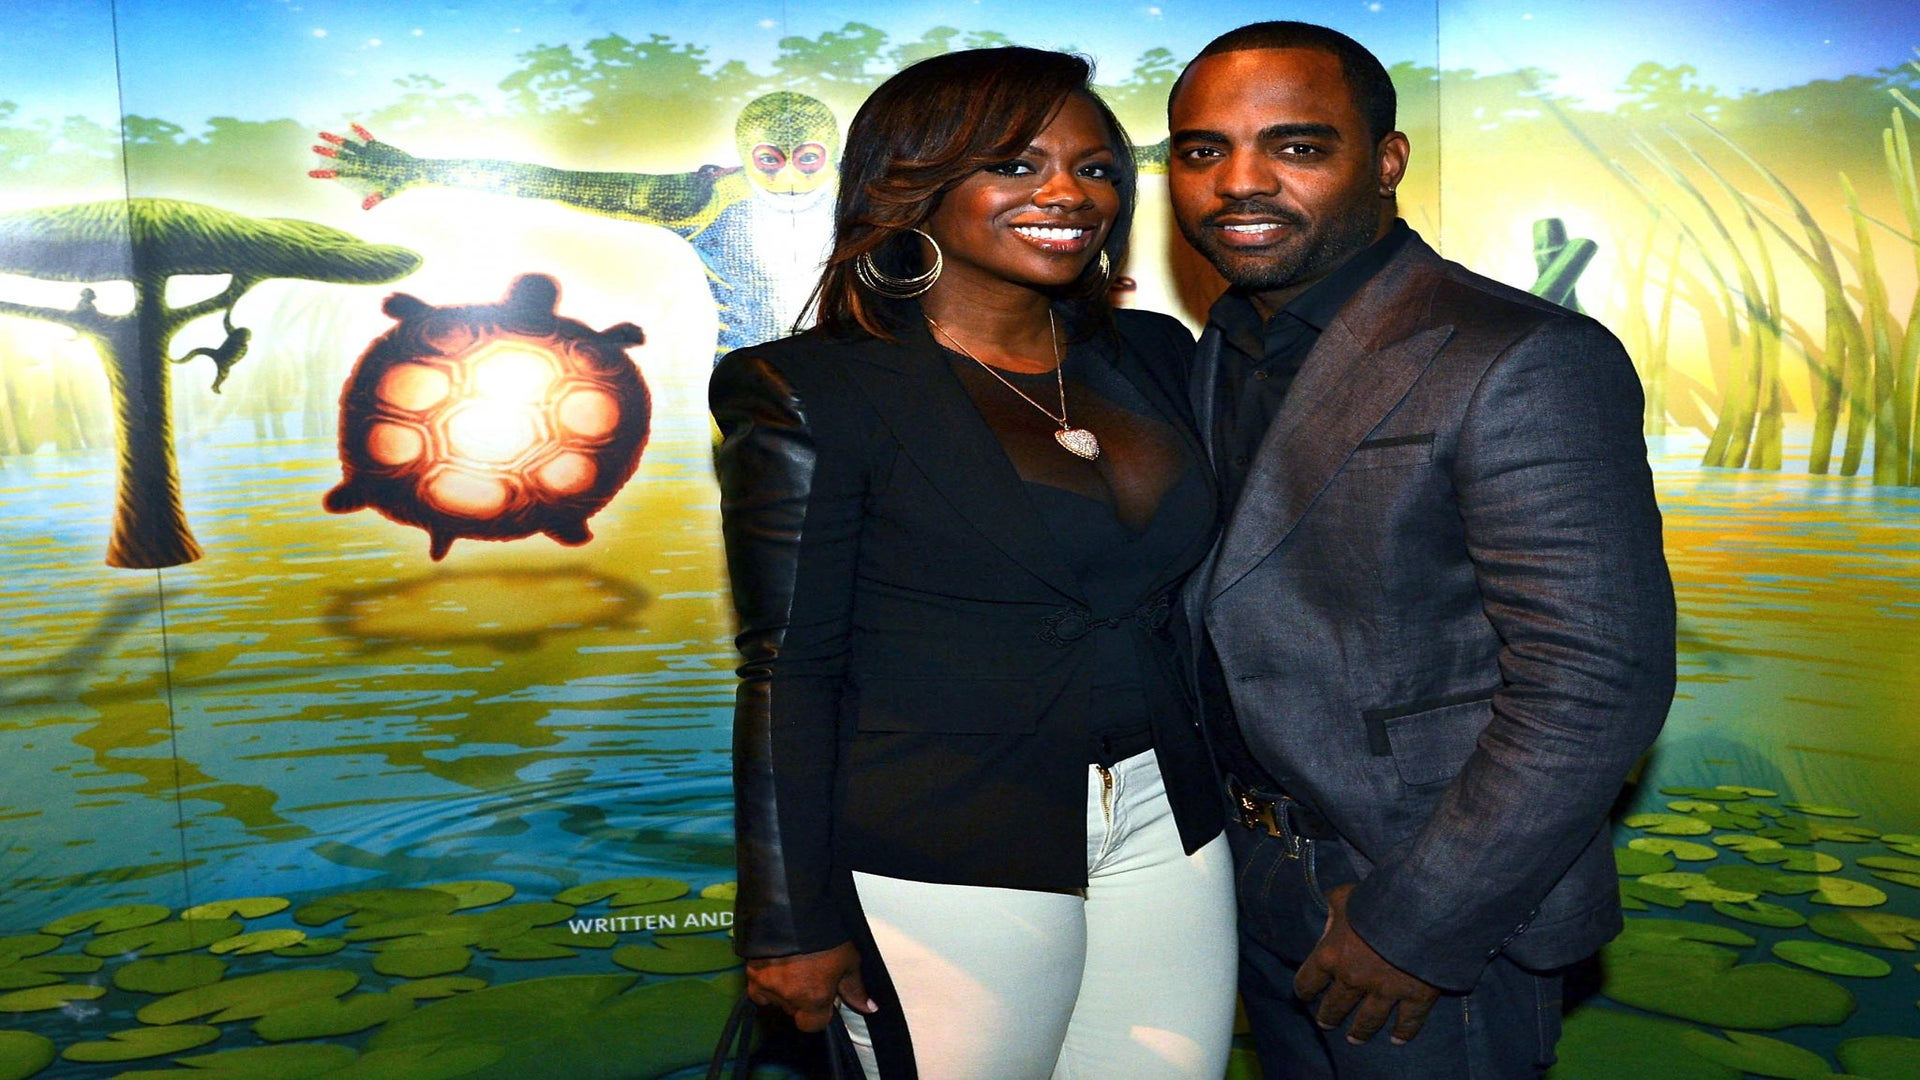 'Real Housewives of Atlanta' Star Kandi Burruss Is Engaged